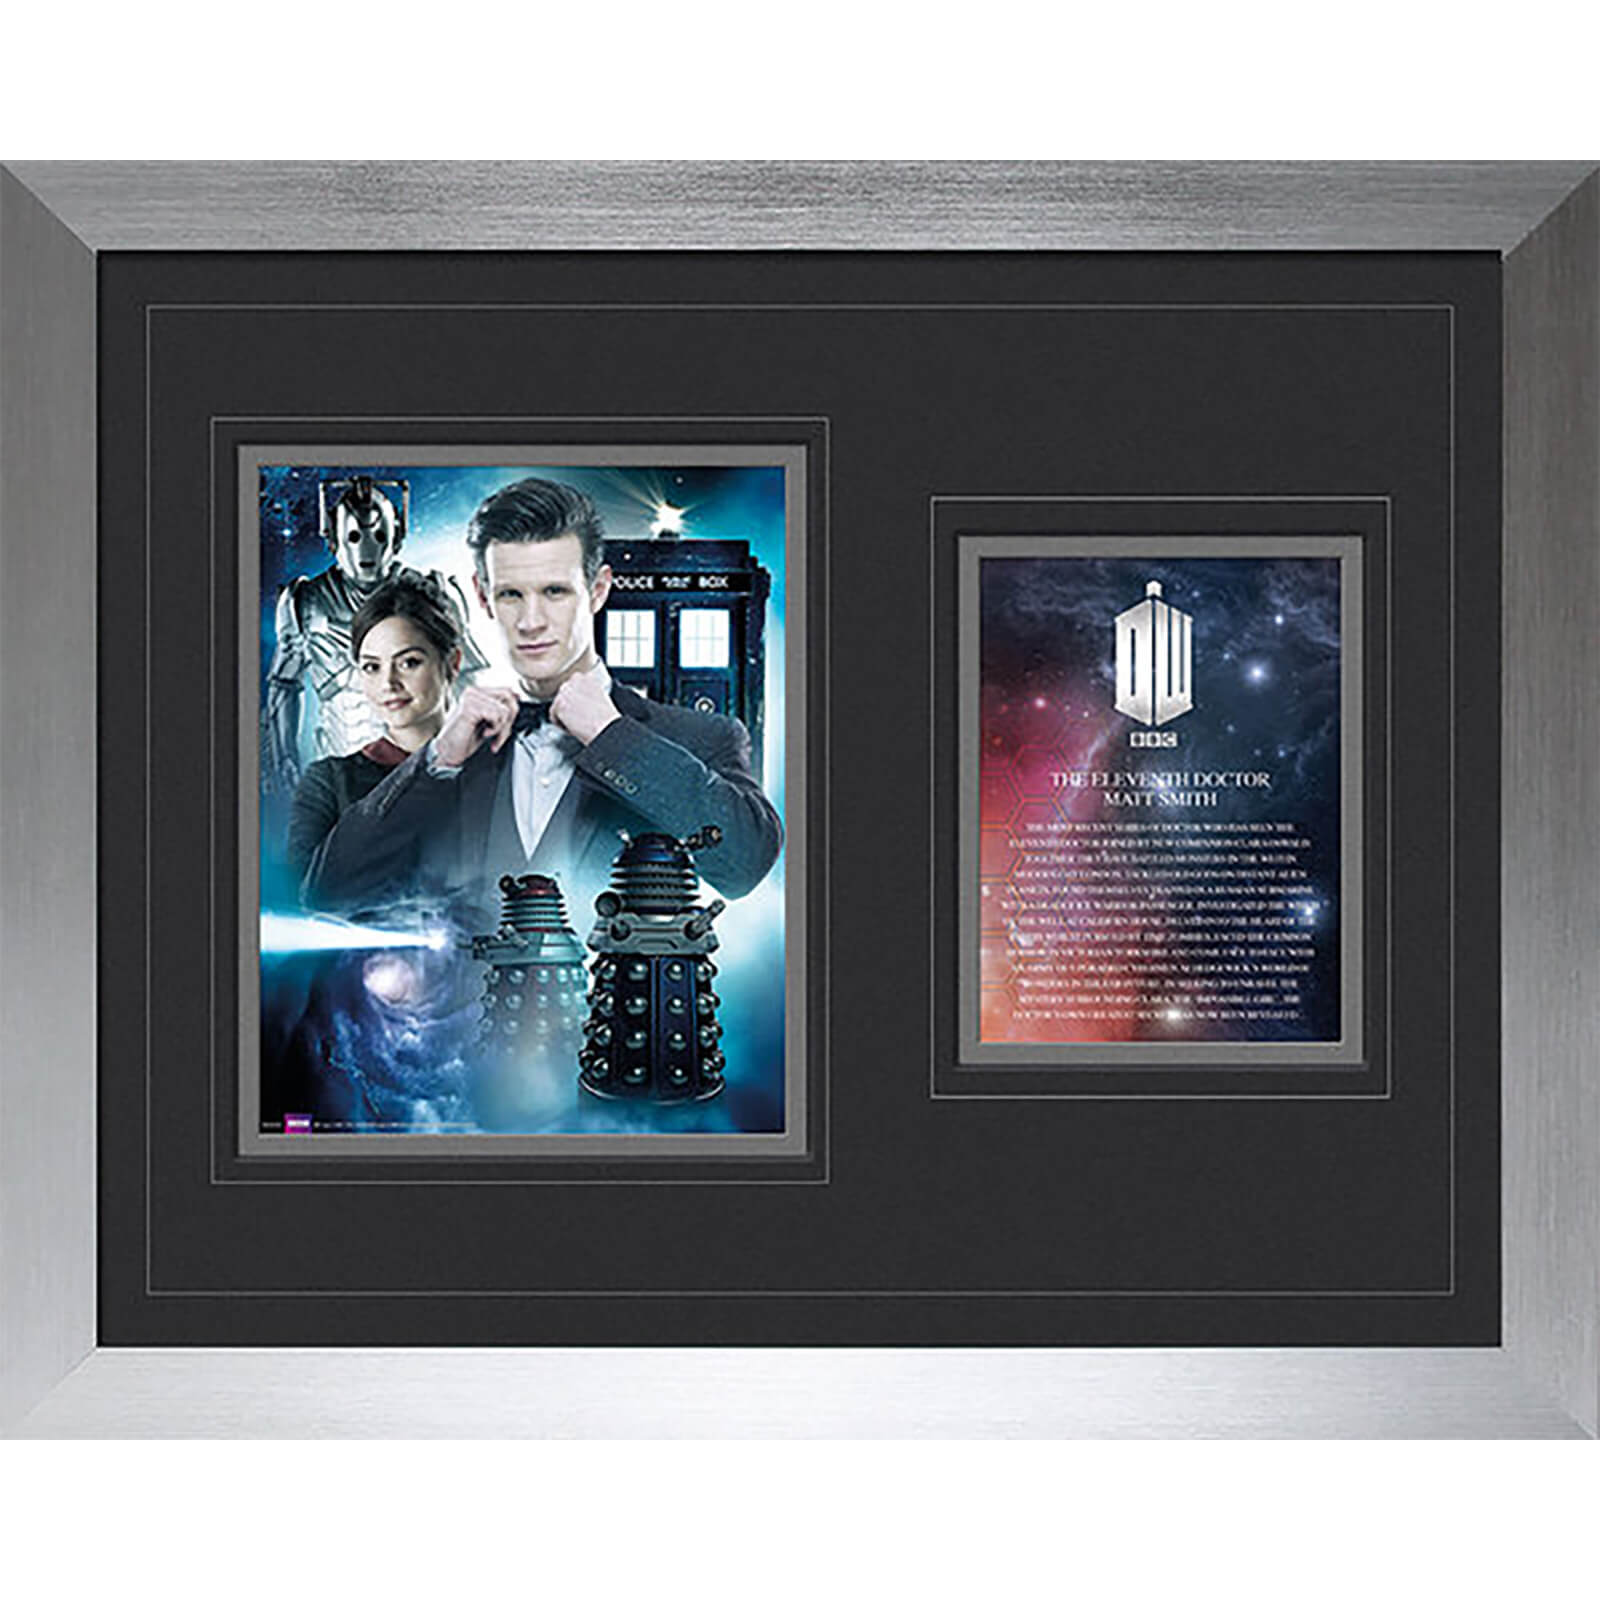 "Doctor Who 11th Doctor - High End Framed Photo - 16"""" x 20"""